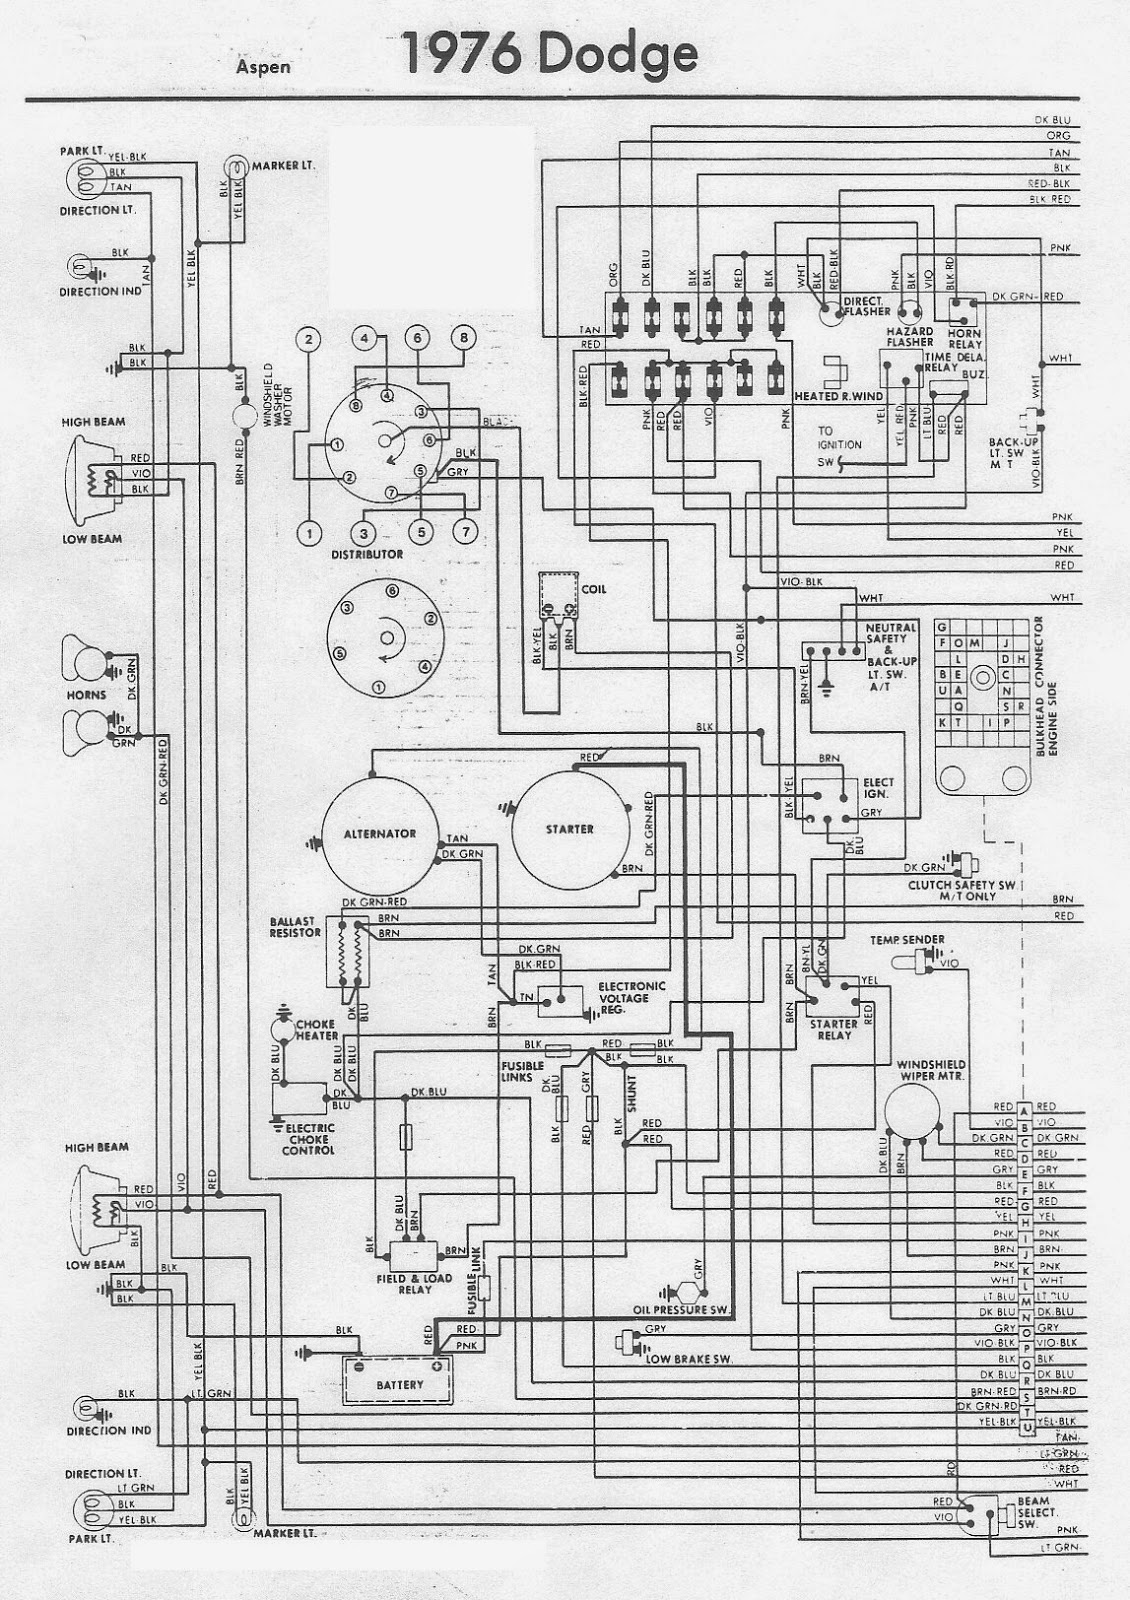 Diagram 99 Dodge Wiring Diagram Full Version Hd Quality Wiring Diagram Diagramstana Dolcialchimie It